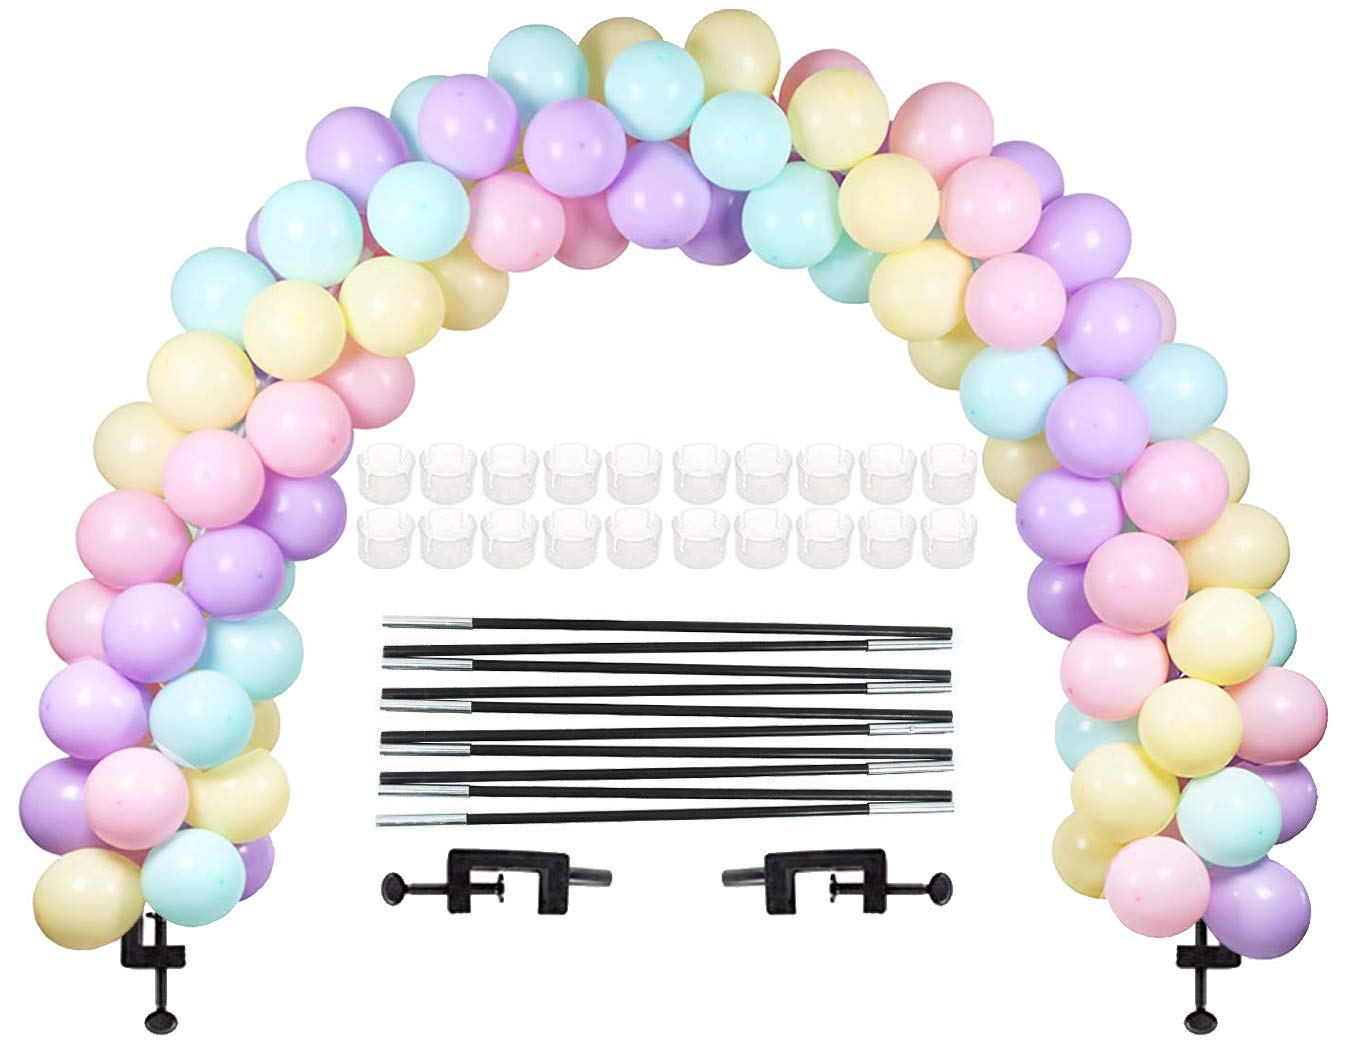 LANGXUN Black Balloon Arch Kit, Balloon Arch Semicircular Arch Kit 2 Adjustable Clips, 10 Fiber Optic Rods 20 Balloon Ring Sets for Different Table Sizes for Birthday Weddings and Graduation Parties